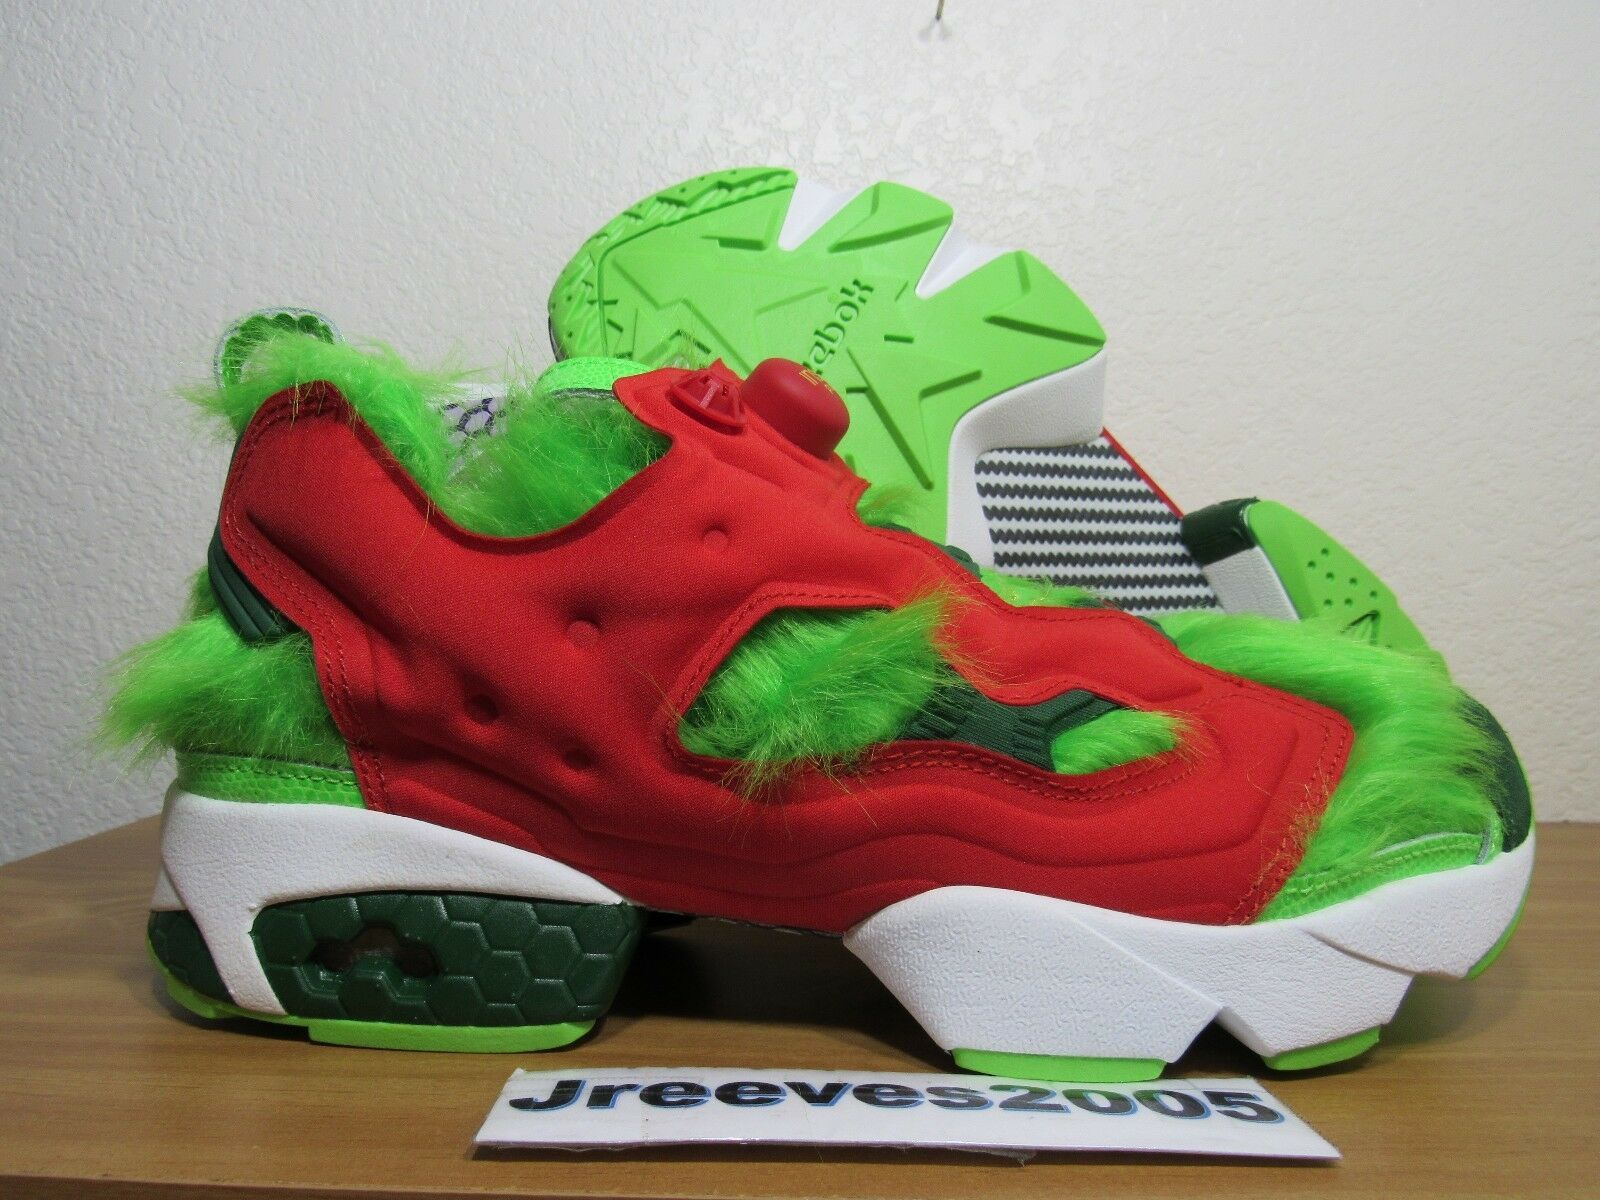 DS Reebok InstaPump Fury CV GRINCH Sz 9.5 100% Authentic Christmas BD4758